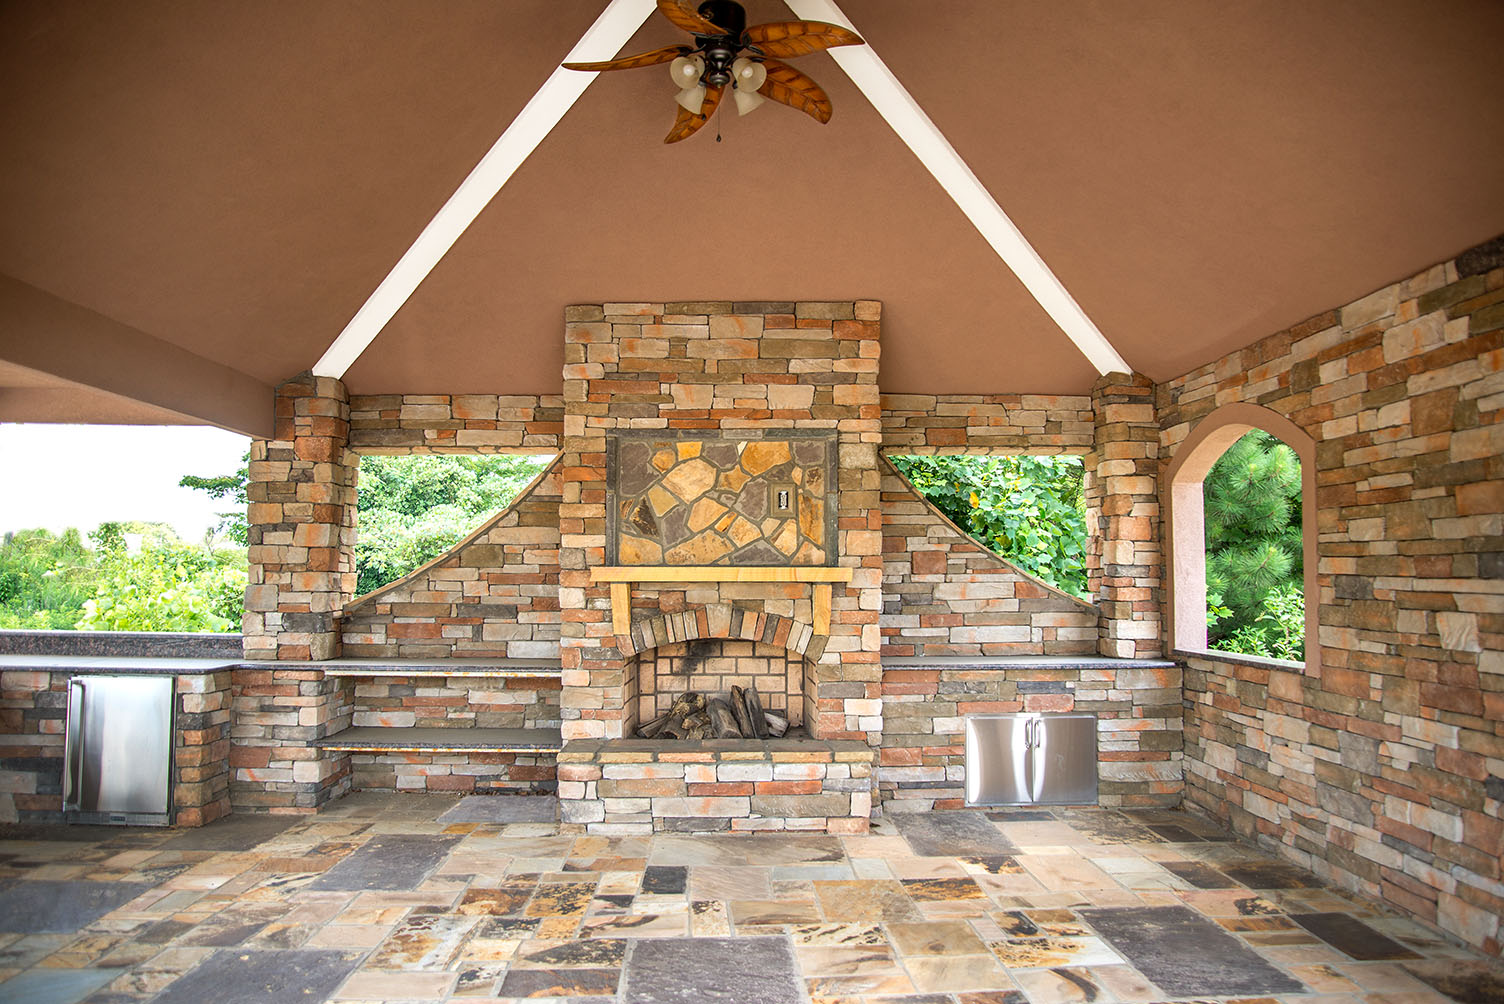 Covered outdoor living area with fireplace